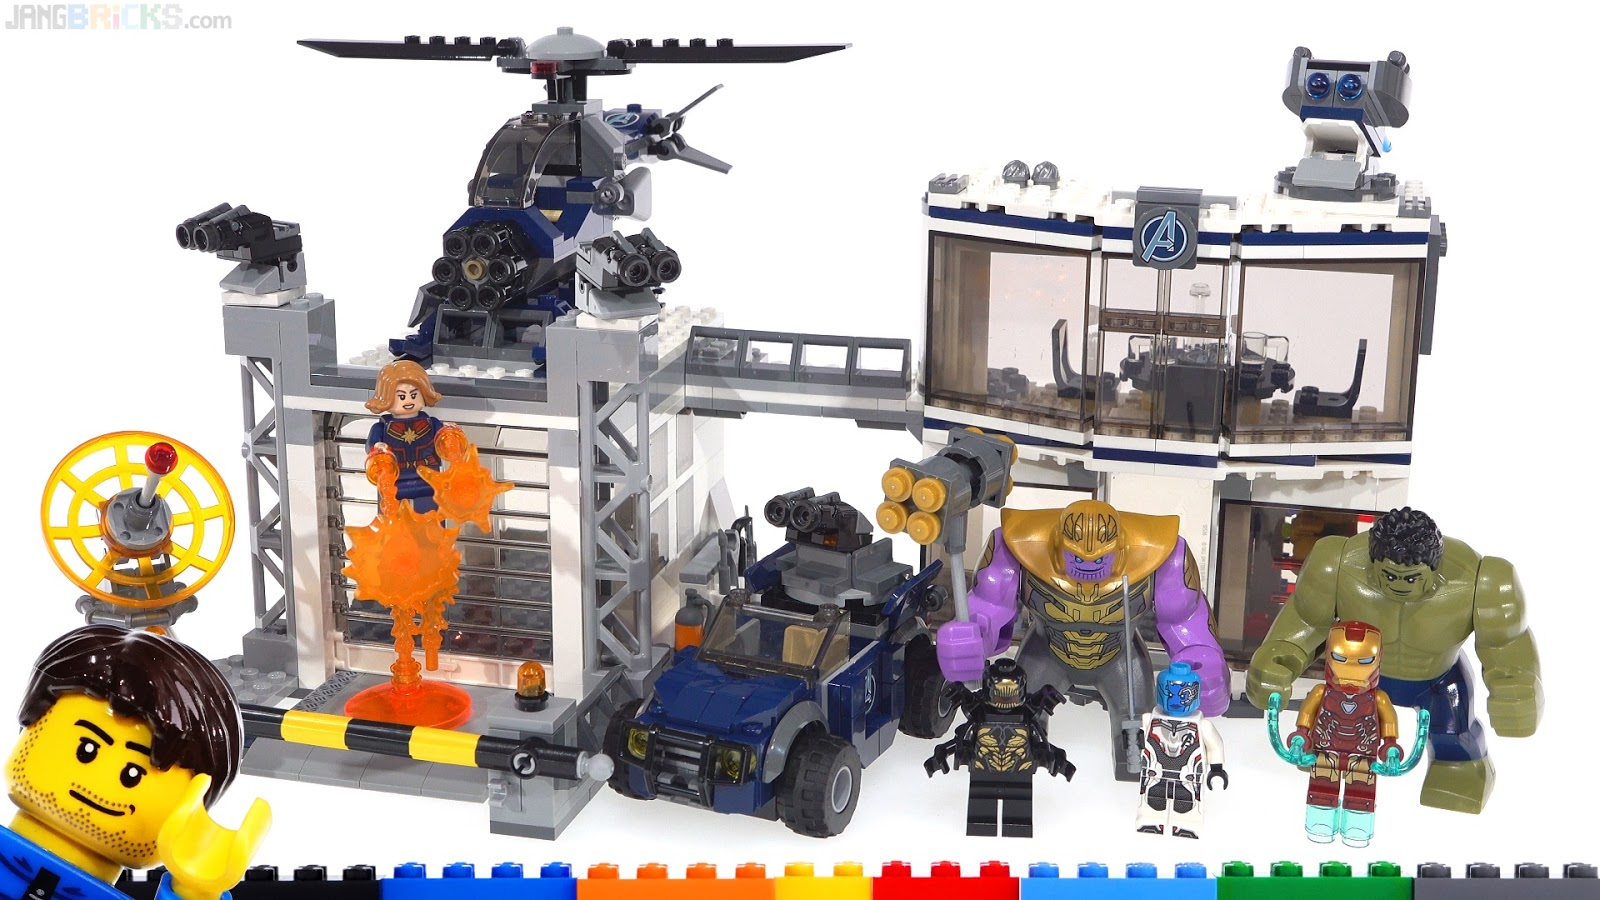 How much time goes into one set?